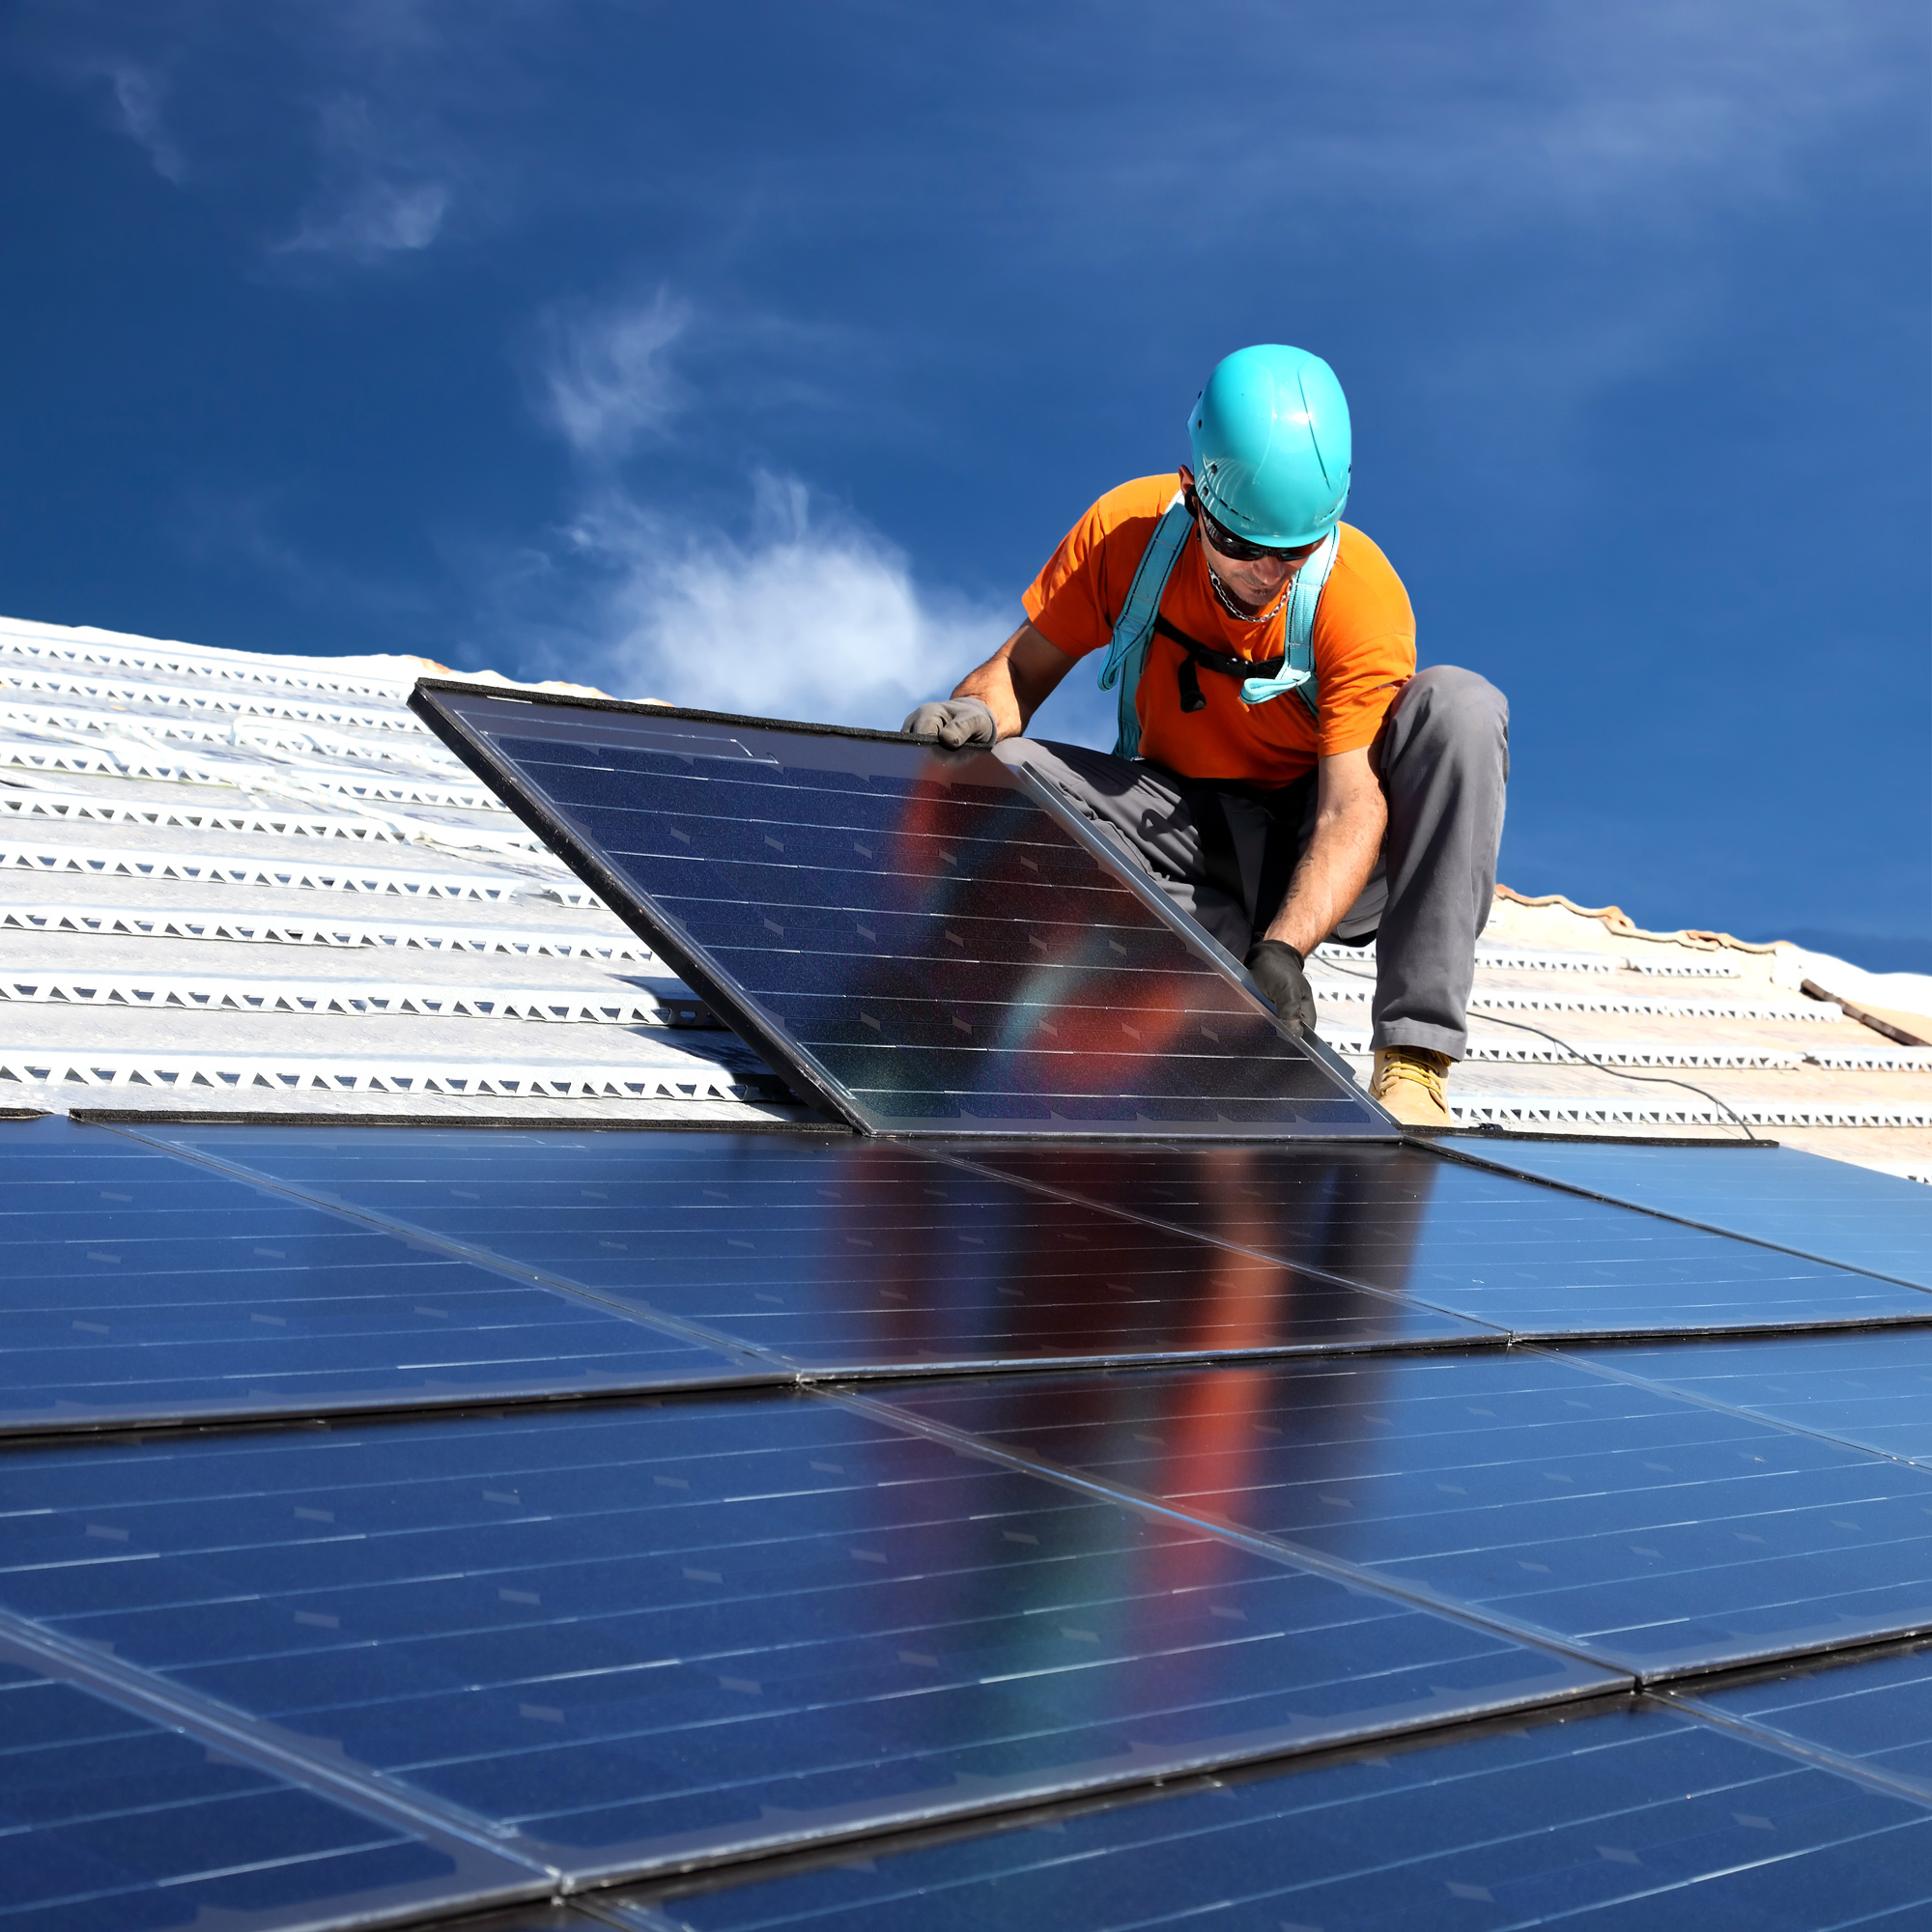 installing-alternative-energy-photovoltaic-solar-panels-on-roof